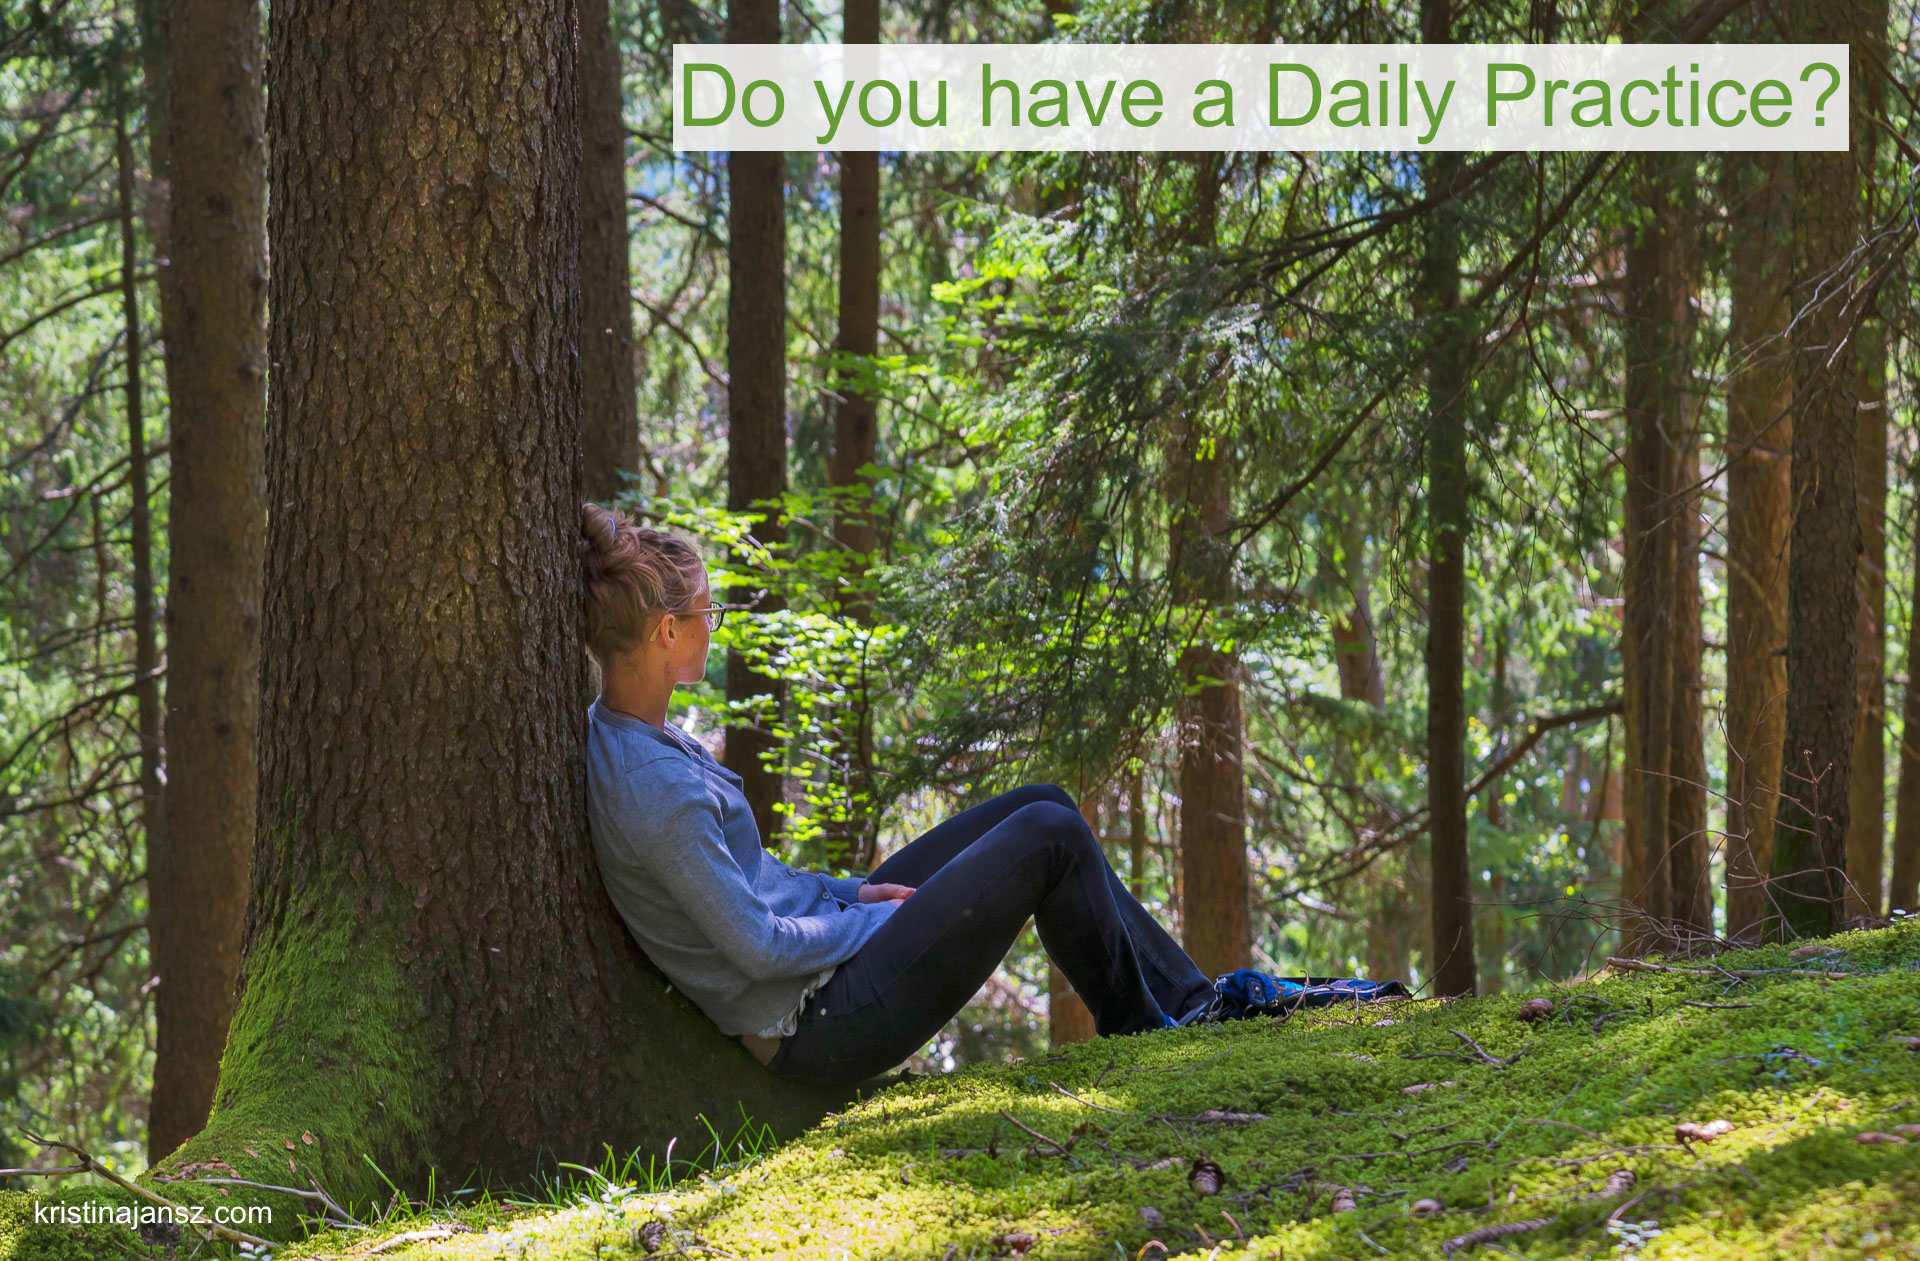 We all need a Daily Practice